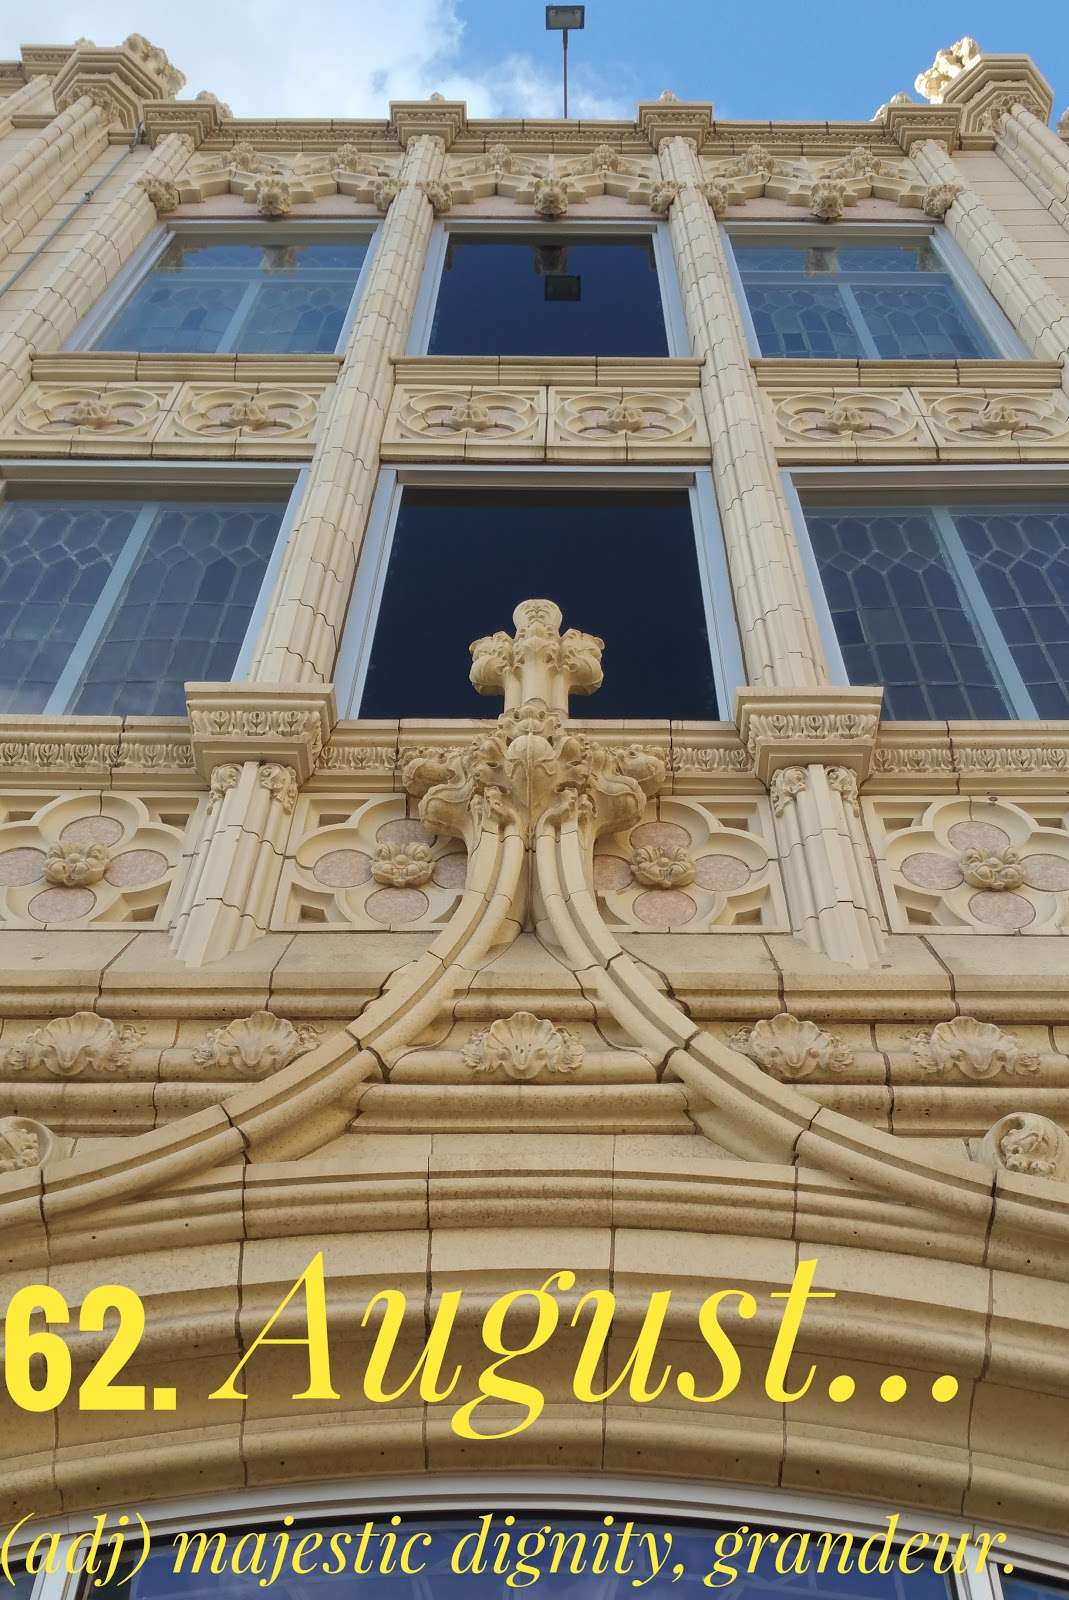 A beautifully adorned facade demonstrates the meaning of 'august.'